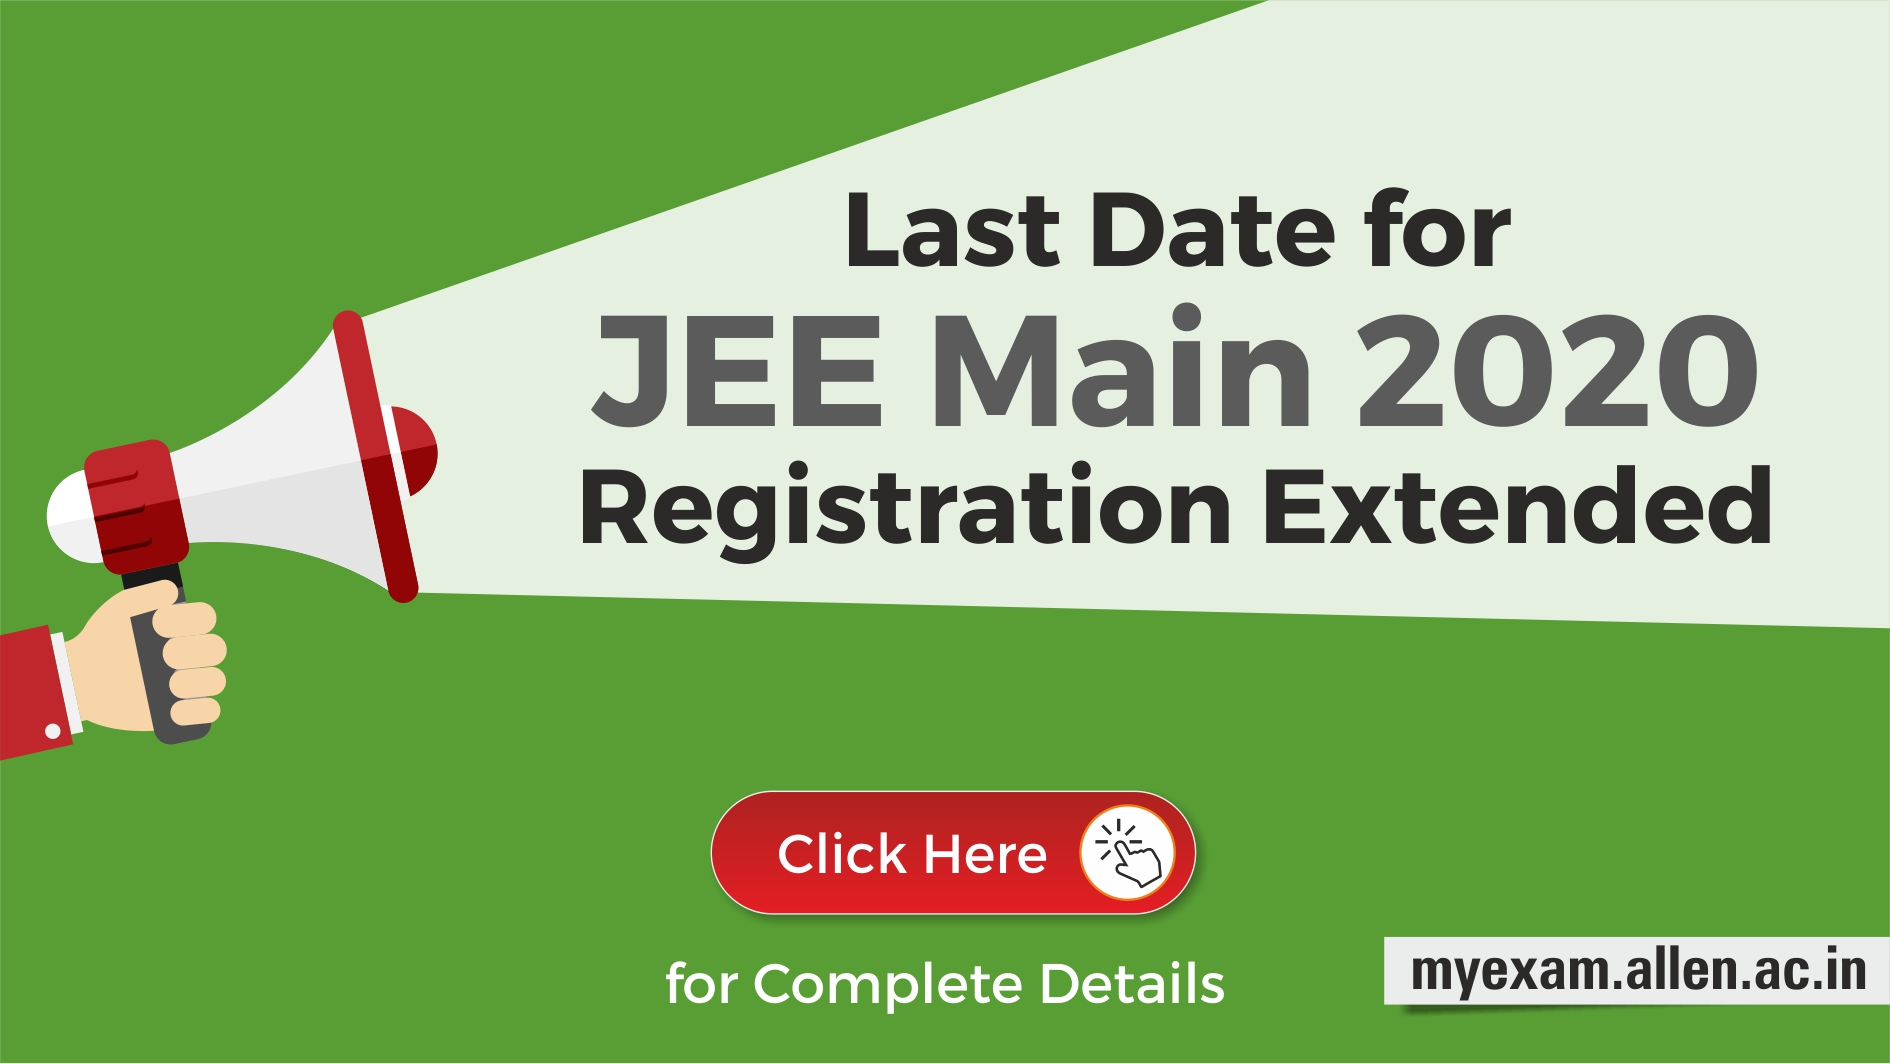 JEE Main 2020 Registration Date extended